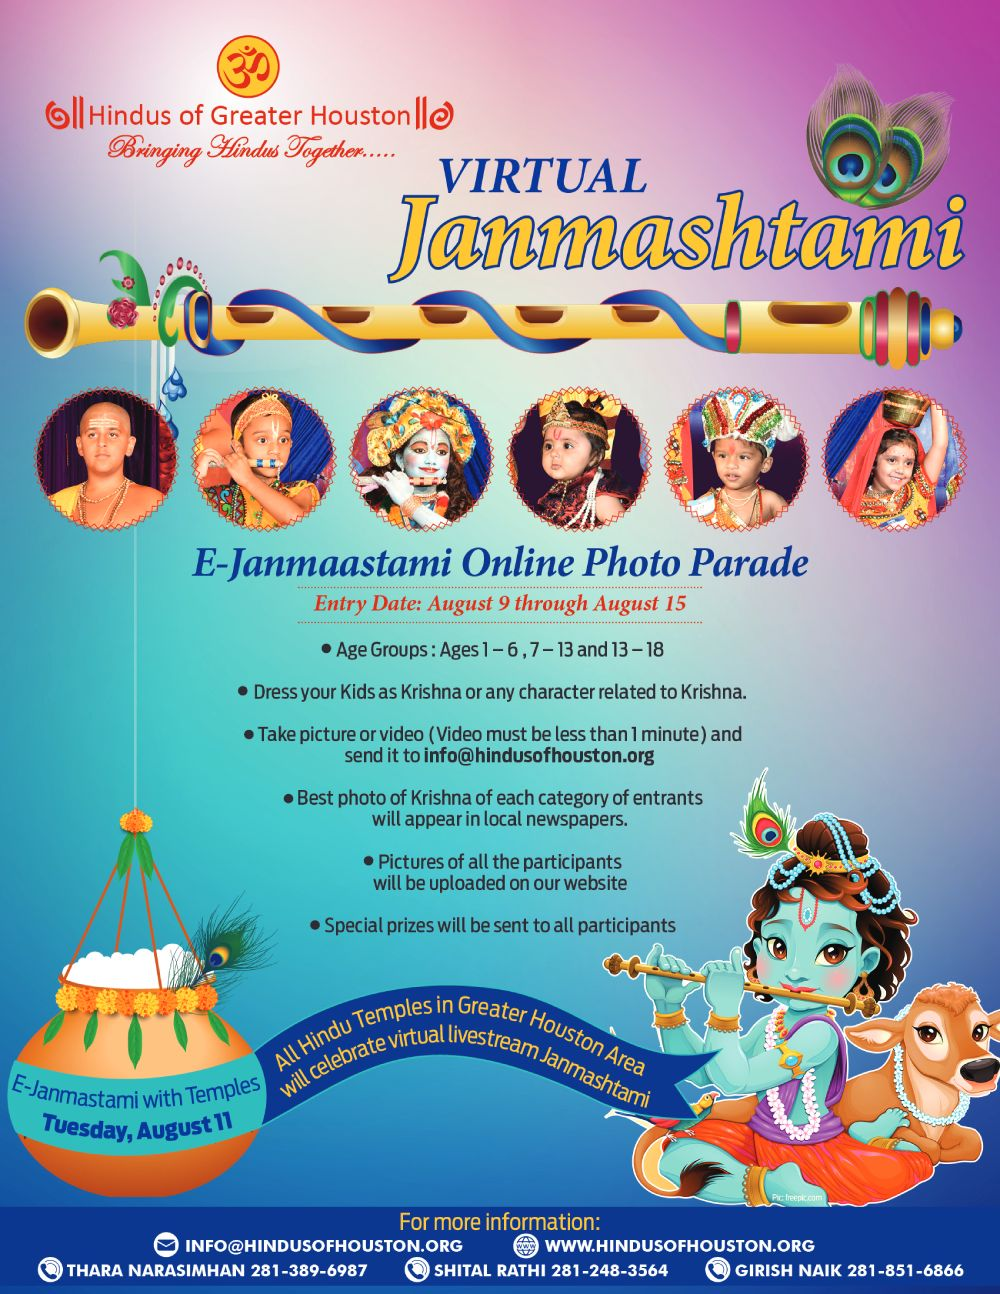 HGH Virtual Janmashtami